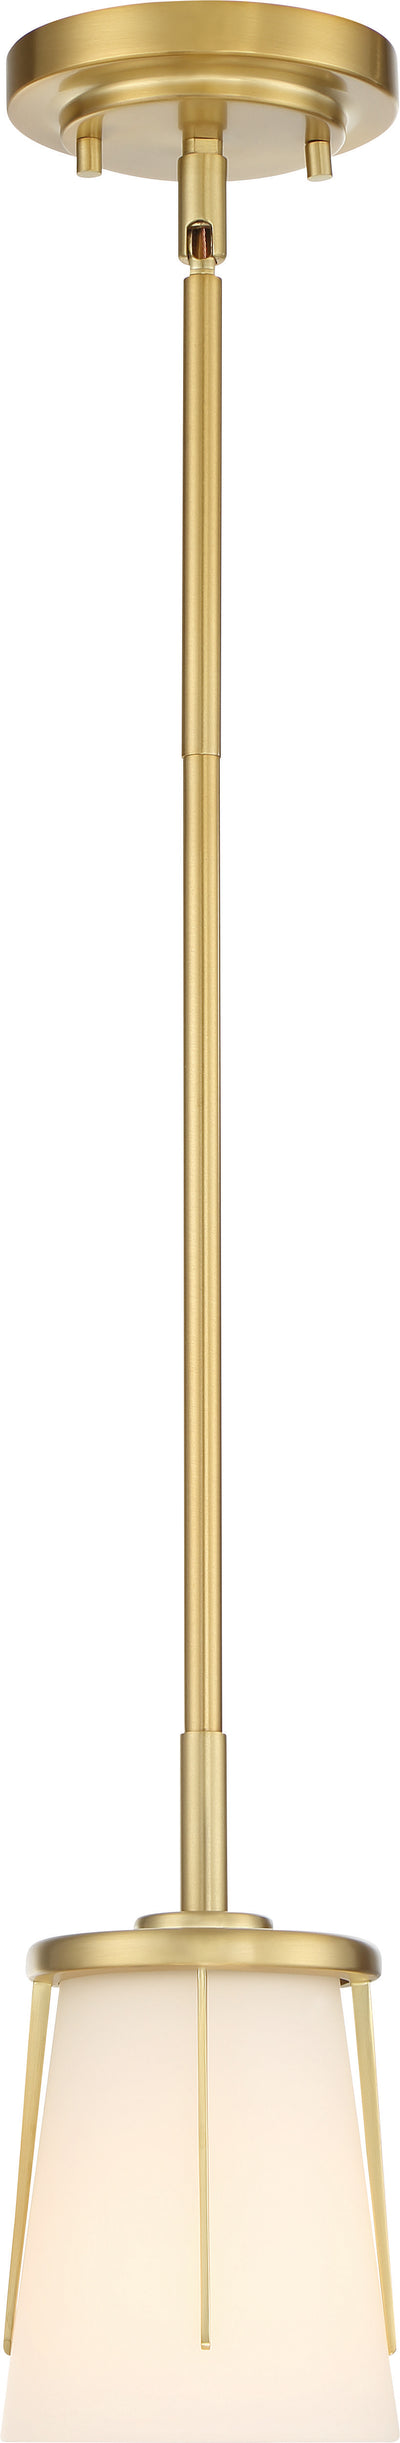 Nuvo Lighting 60/6535 Serene 1 Light Mini Pendant Natural Brass Finish with Satin White Glass